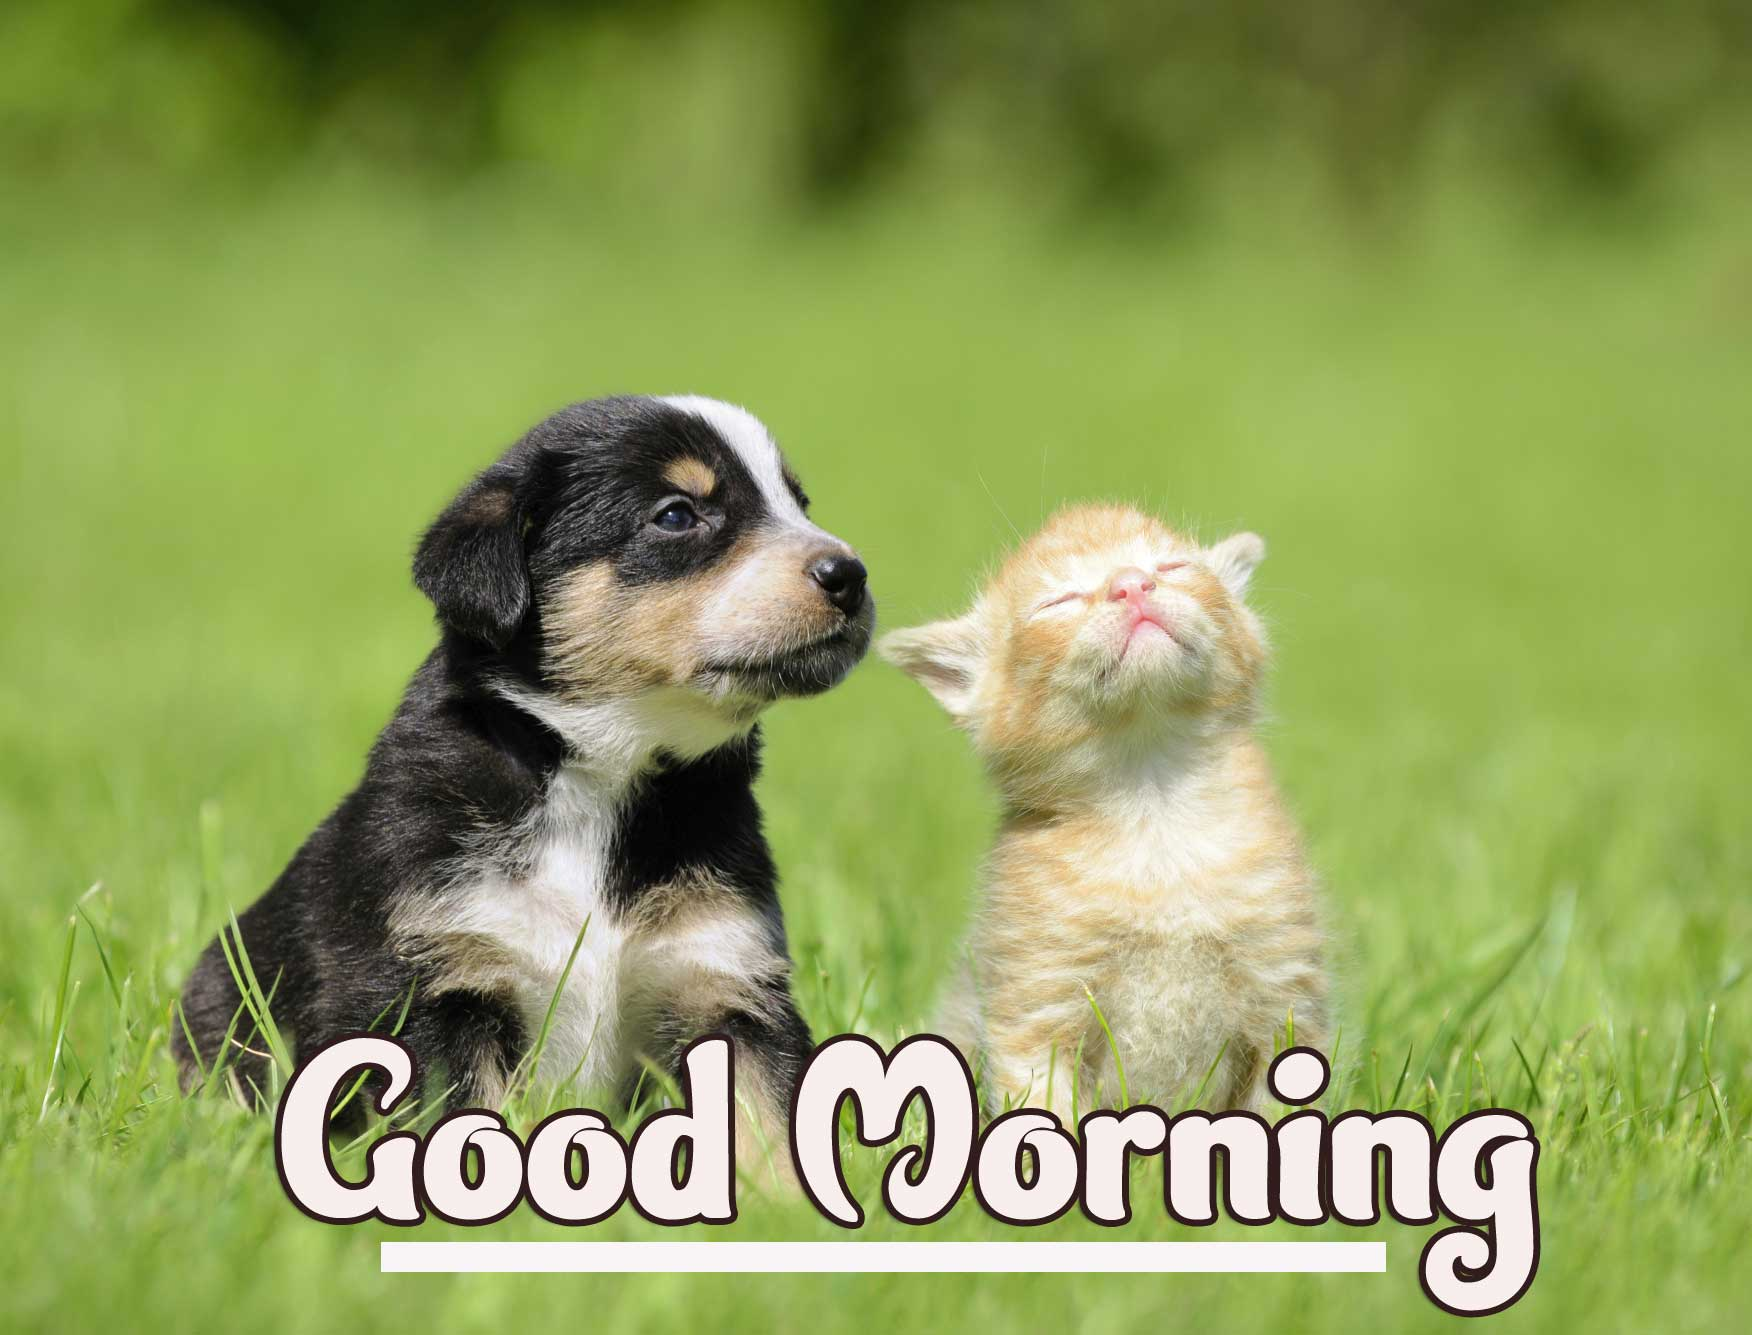 Animal Bird Lion Good Morning Wishes Wallpaper With Cute Puppy Lover